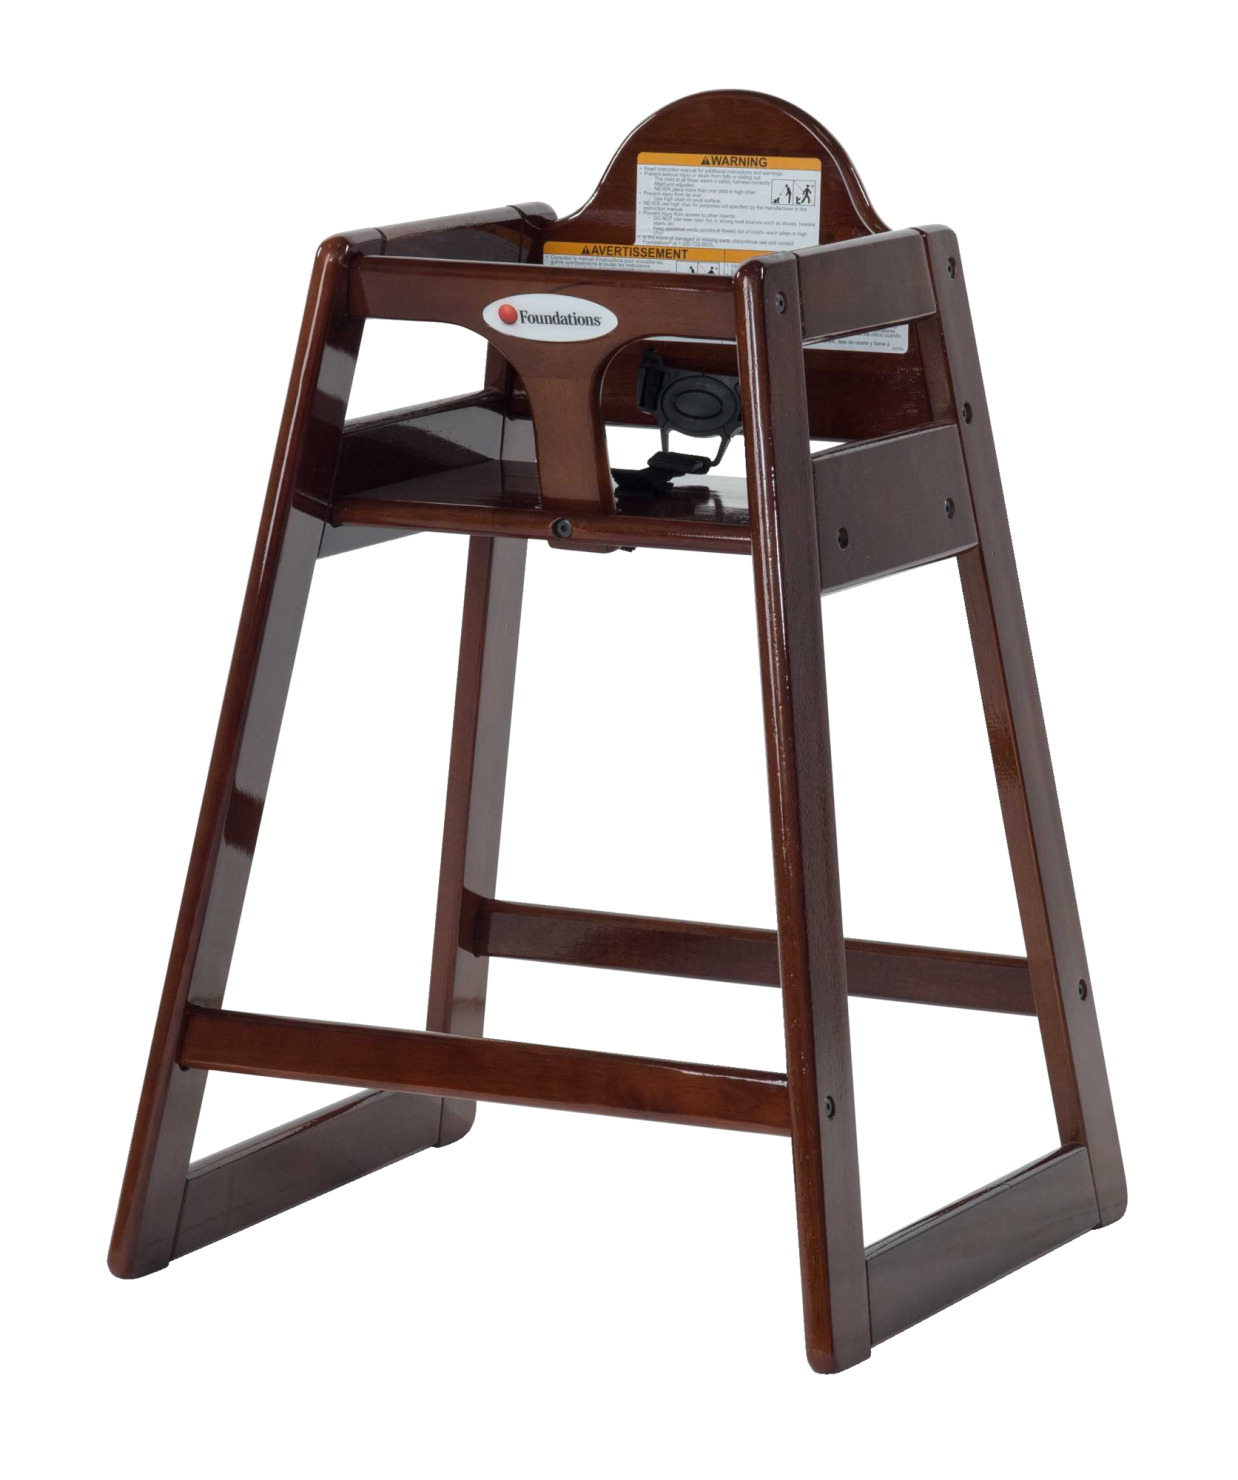 Outstanding Foundations High Chair Wood Antique Cherry Alphanode Cool Chair Designs And Ideas Alphanodeonline